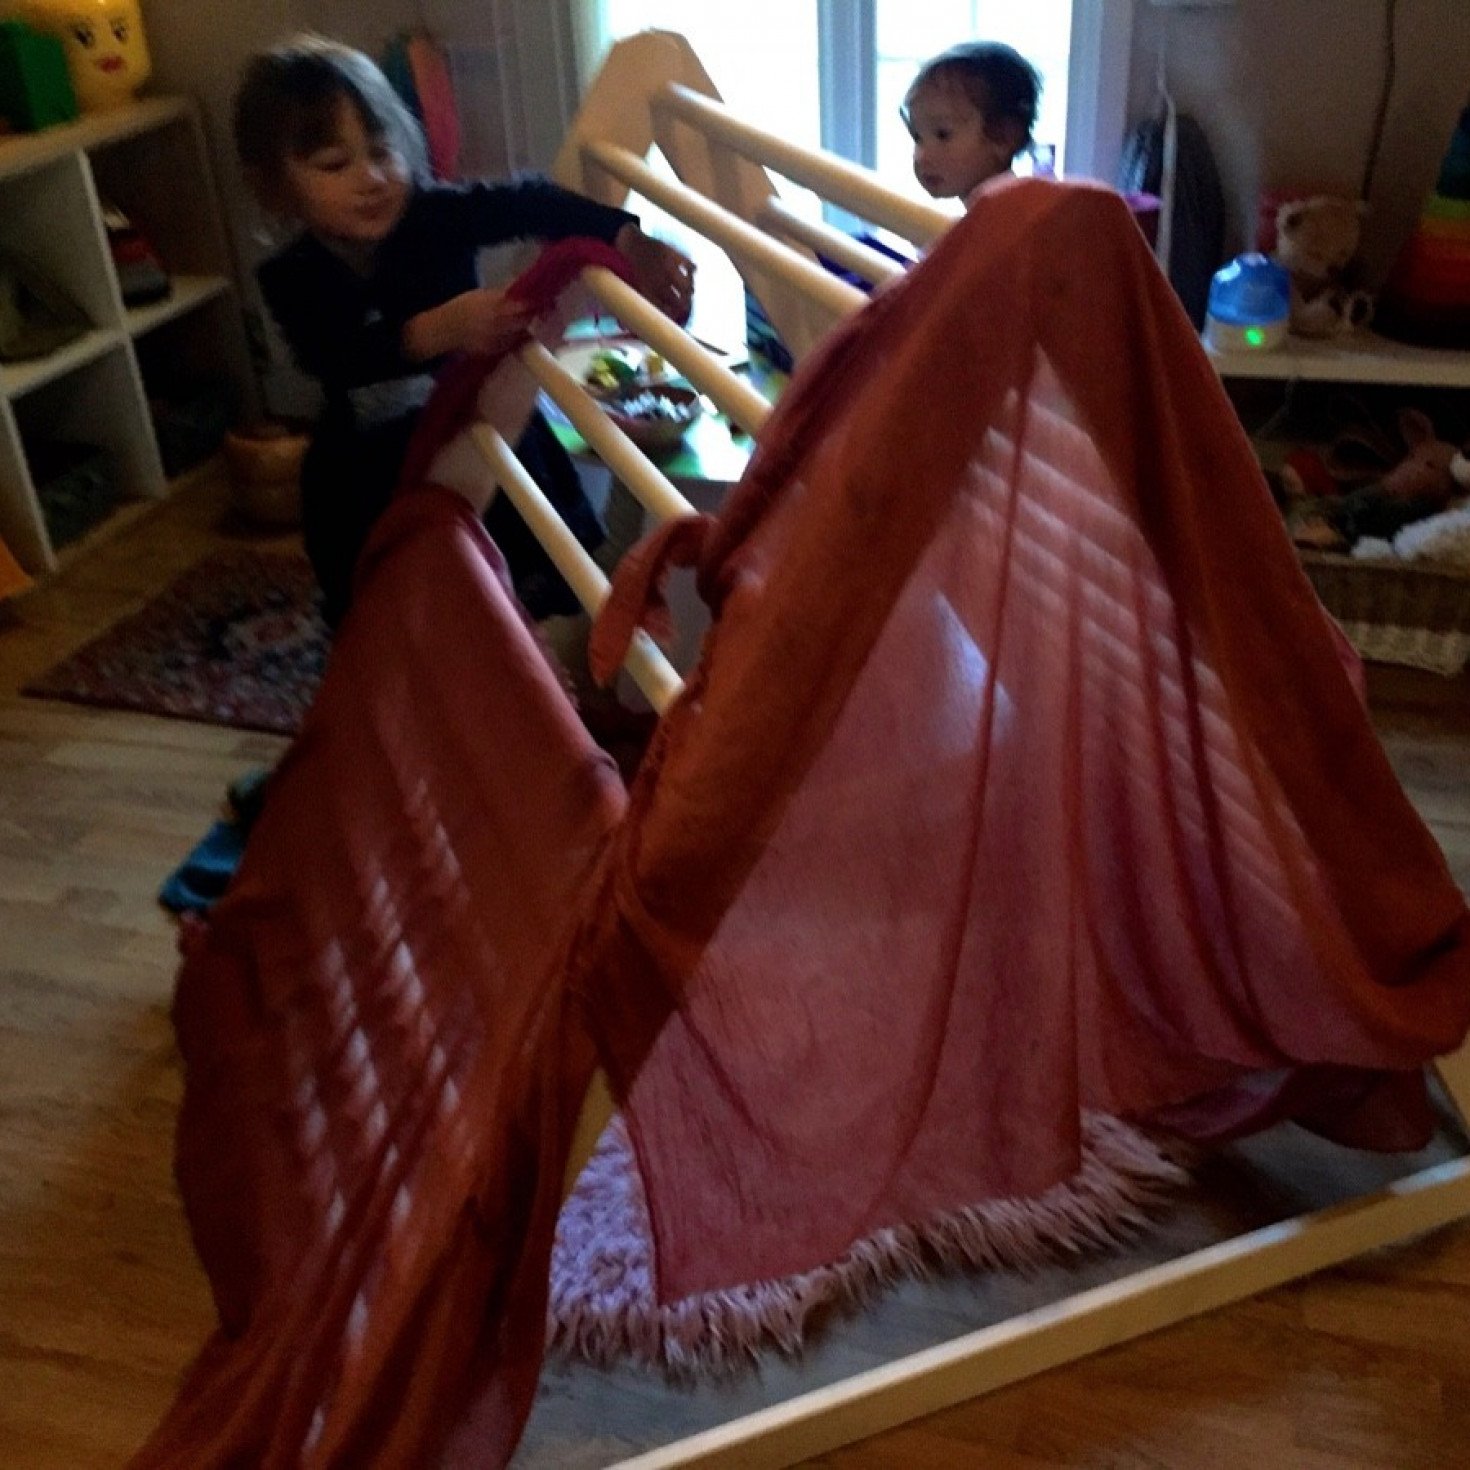 Children playing with an indoor wooden climbing frame